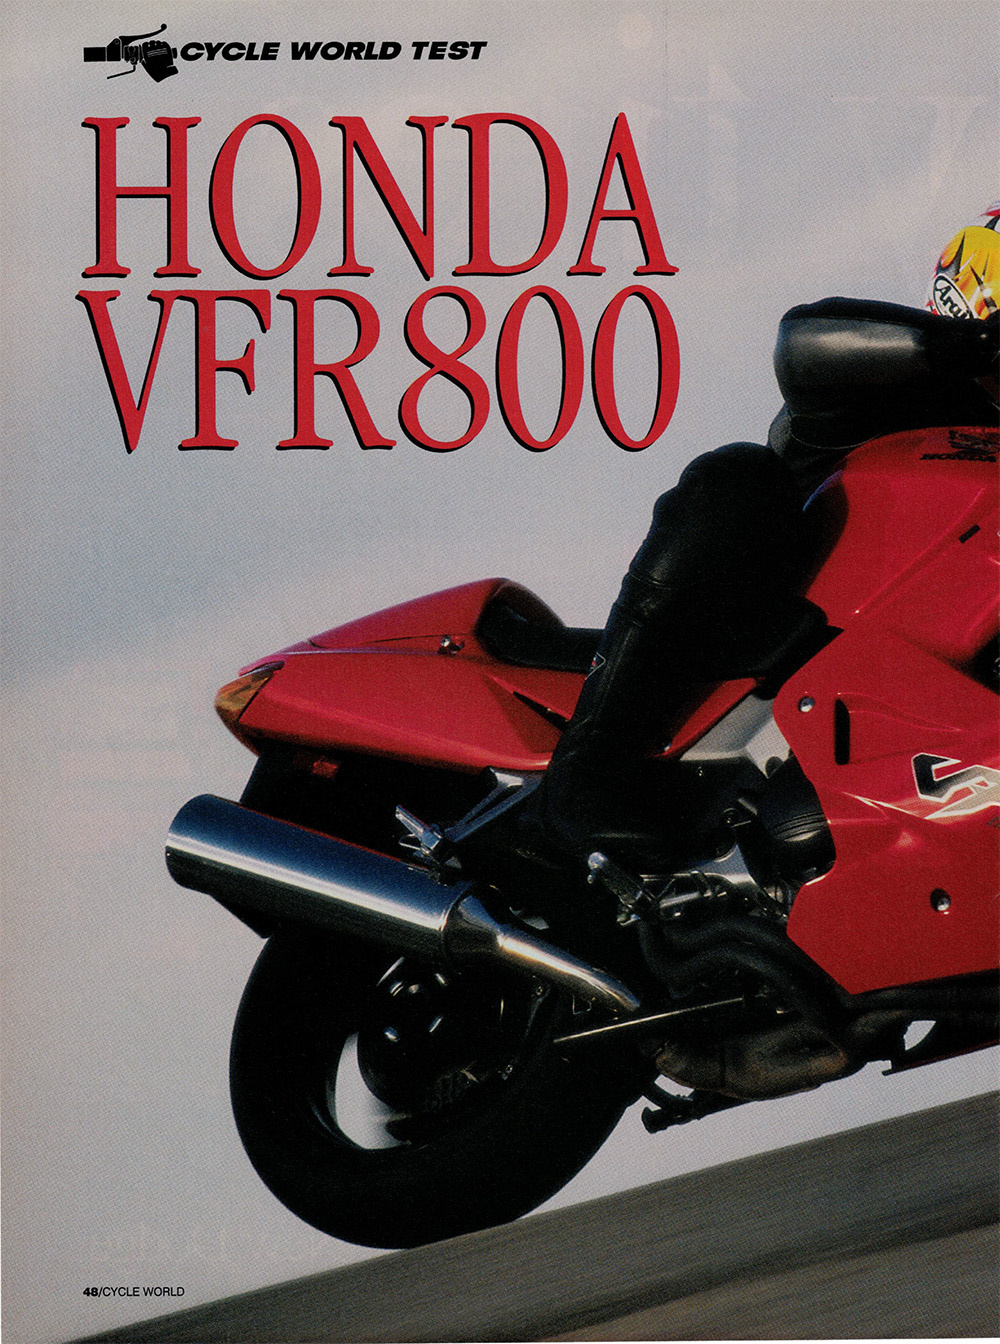 1998 Honda VFR800Fi road test 1.jpg